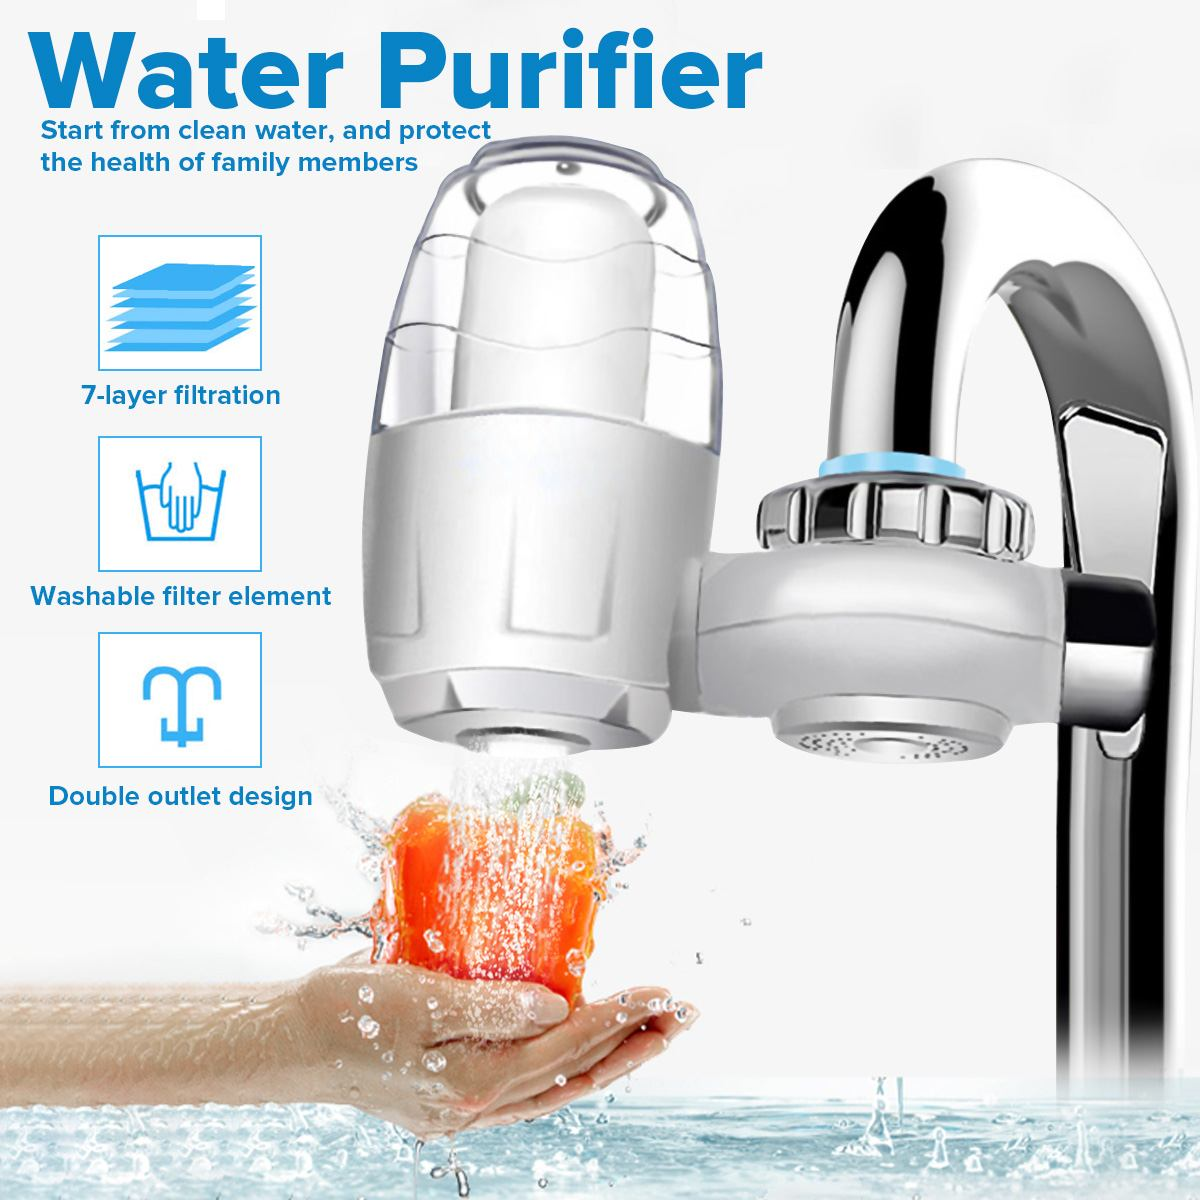 water filtration faucets kitchen new home kitchen faucet water purifier 7 layer filter water filter purification system remove 668